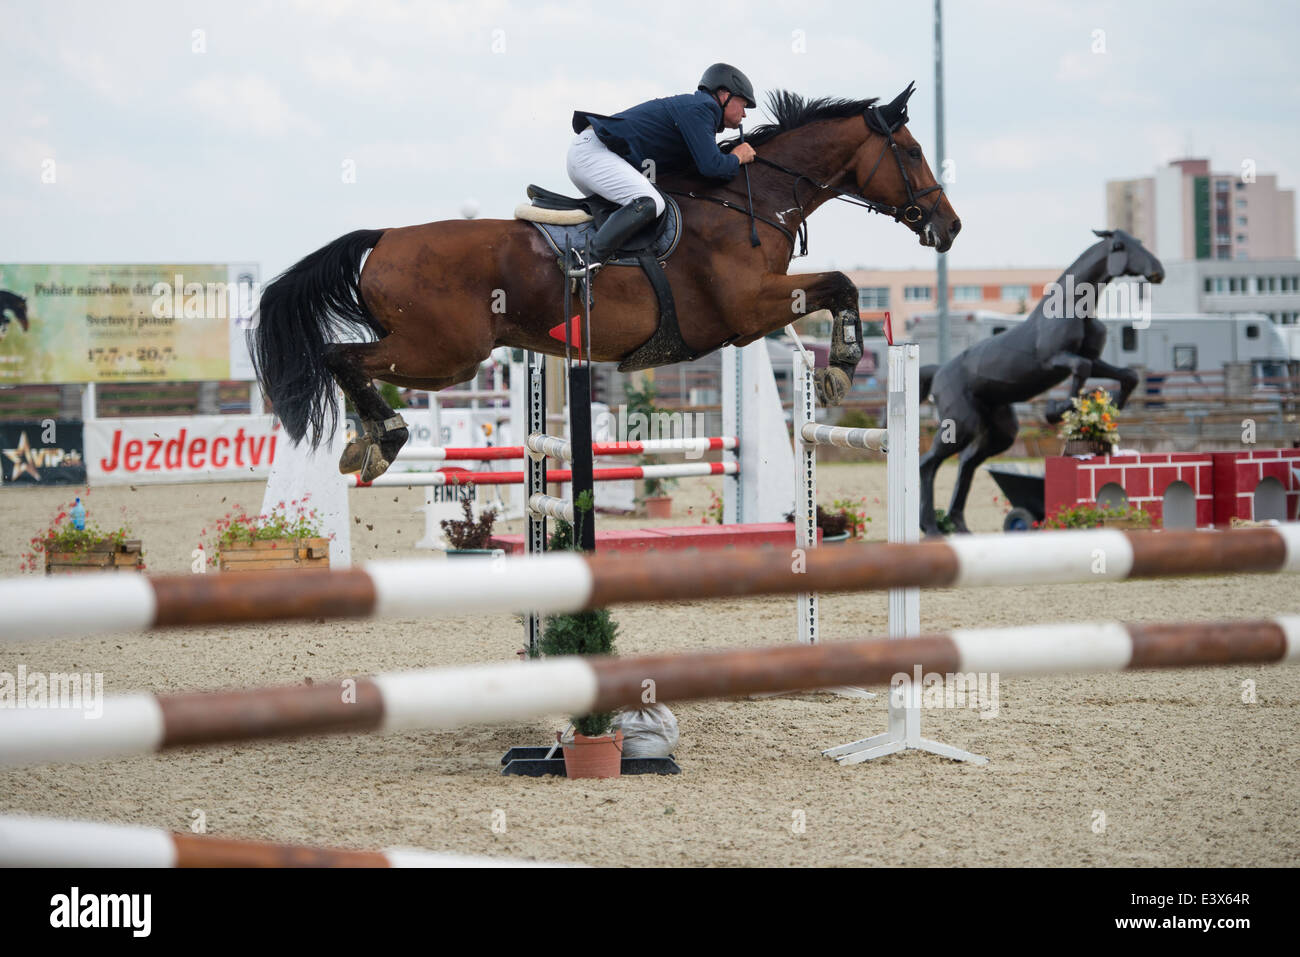 Henrich Mock SVK on horse Jopas jumps over hurdle on Rozalka Cup 2014 on July 29, 2014 in Pezinok, Slovakia - Stock Image